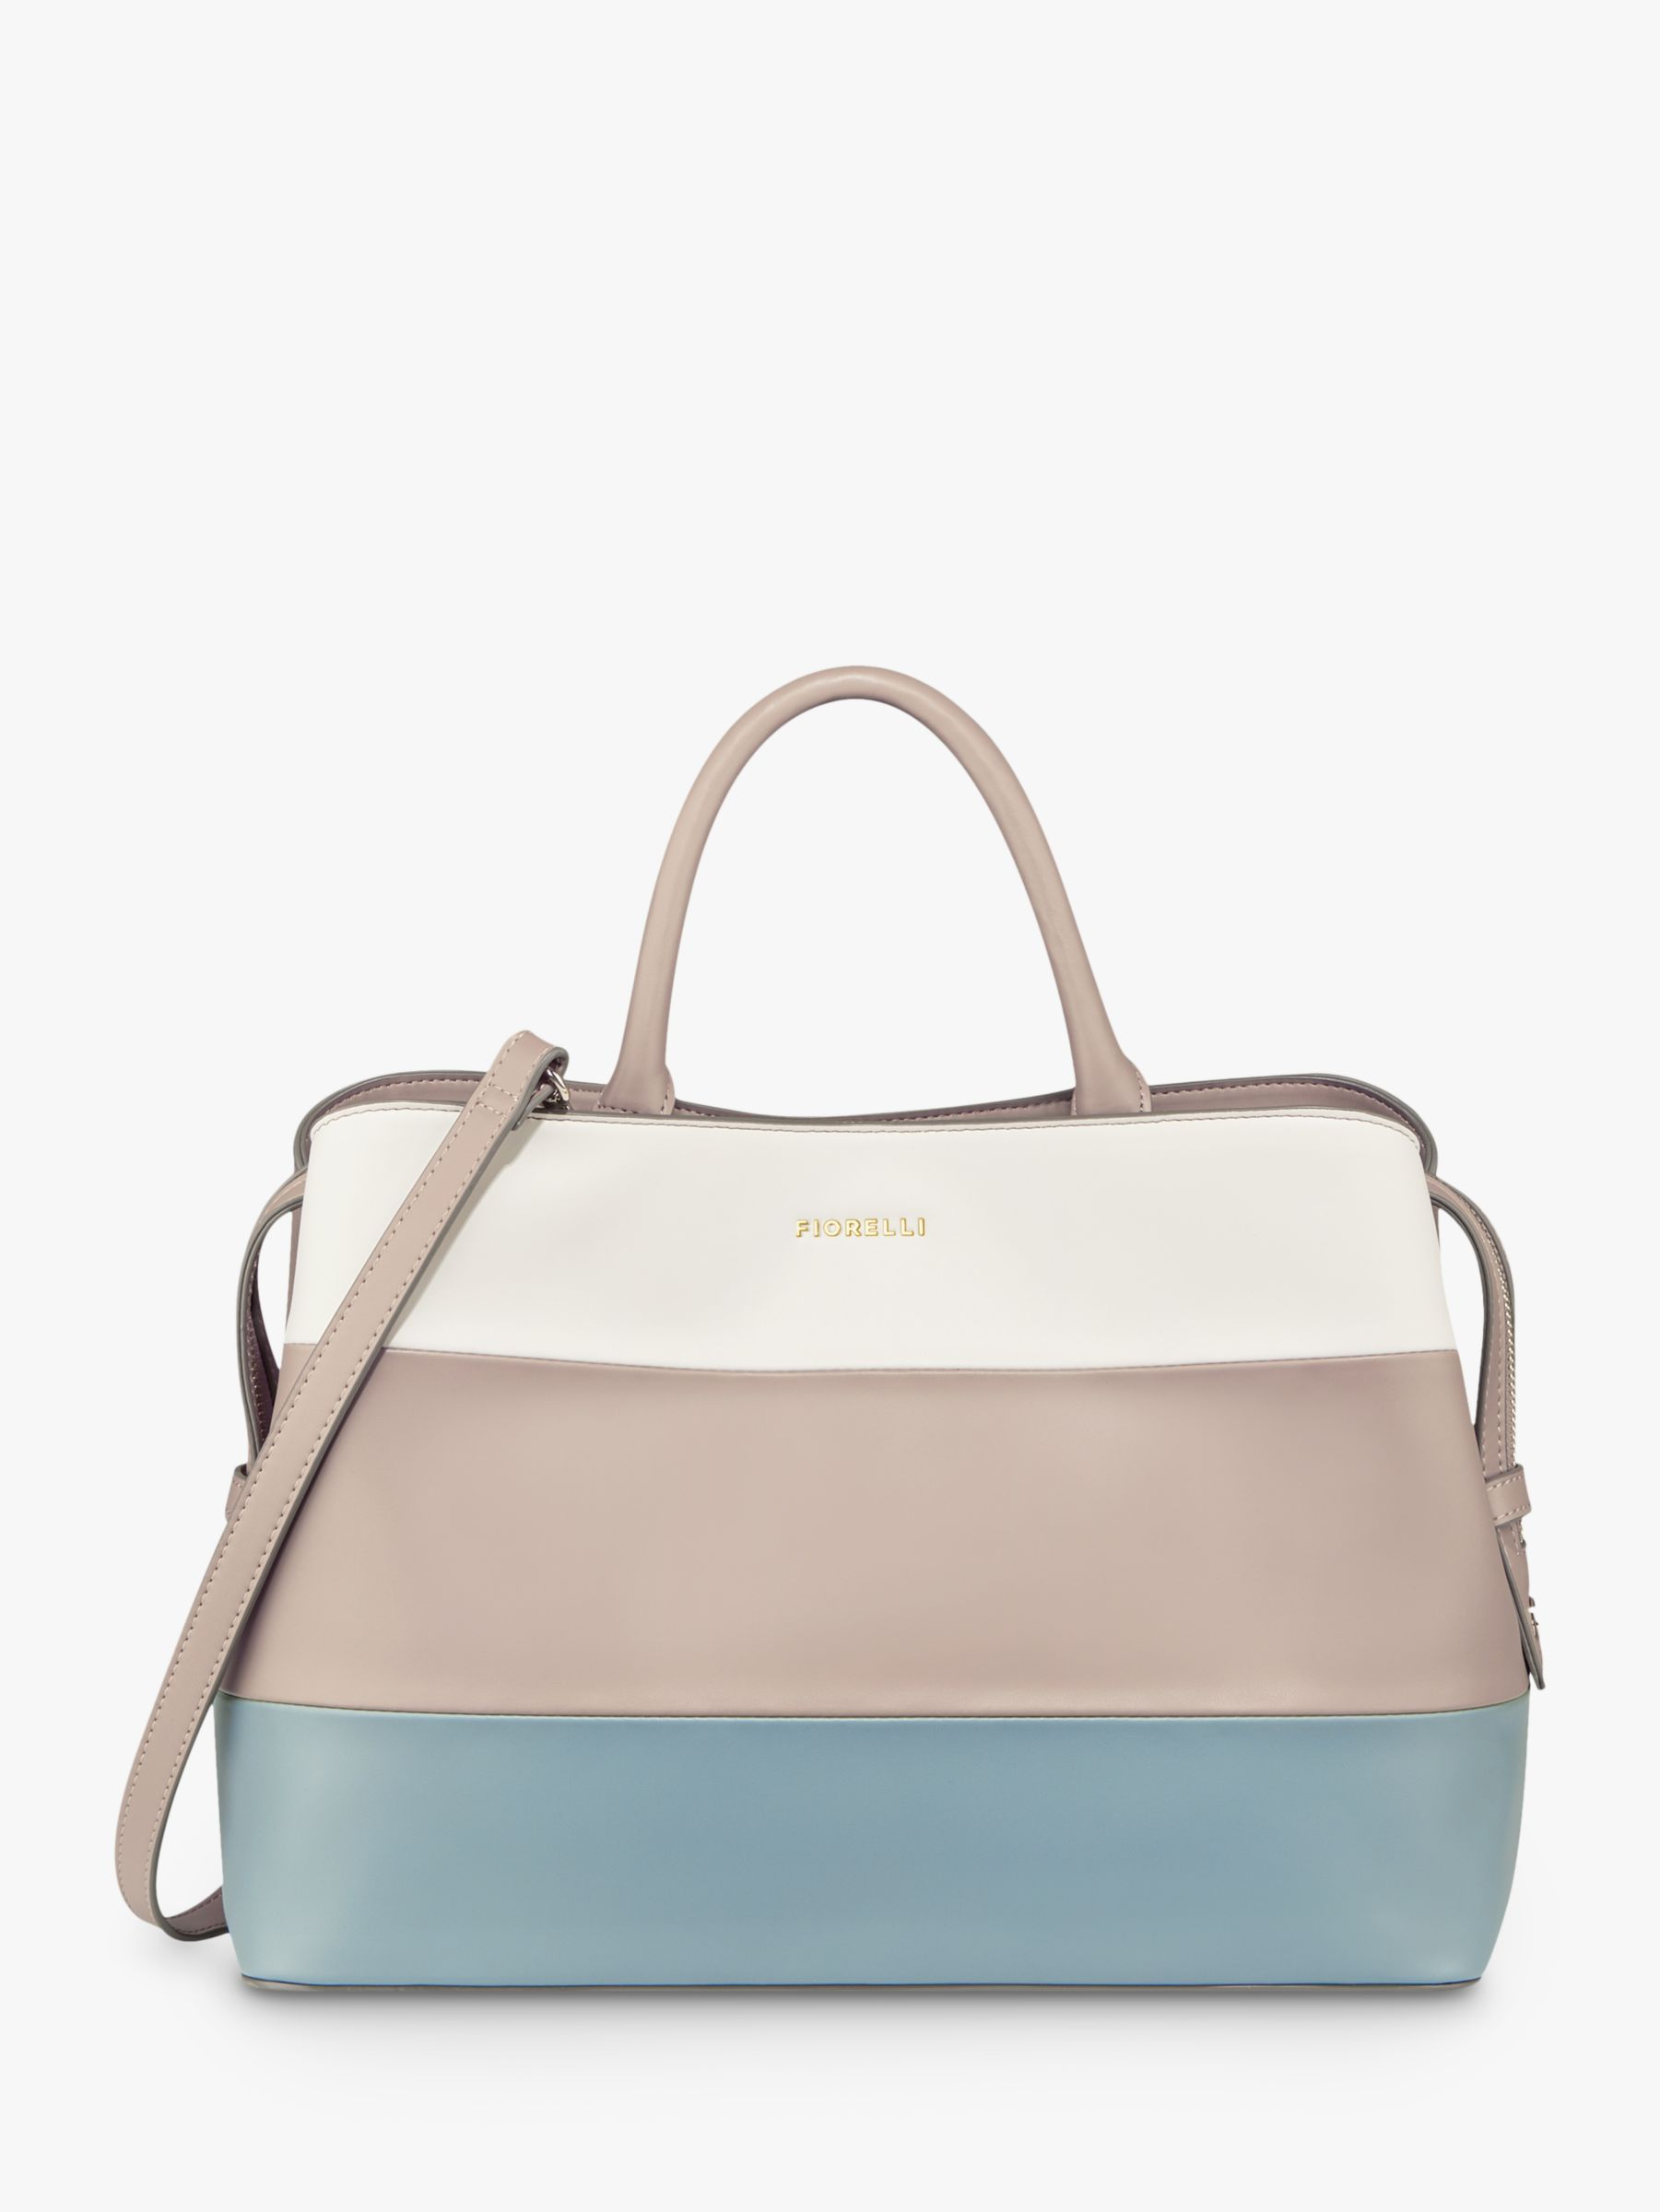 Fiorelli Fiorelli Bethnal Triple Compartment Grab Bag, Thyme